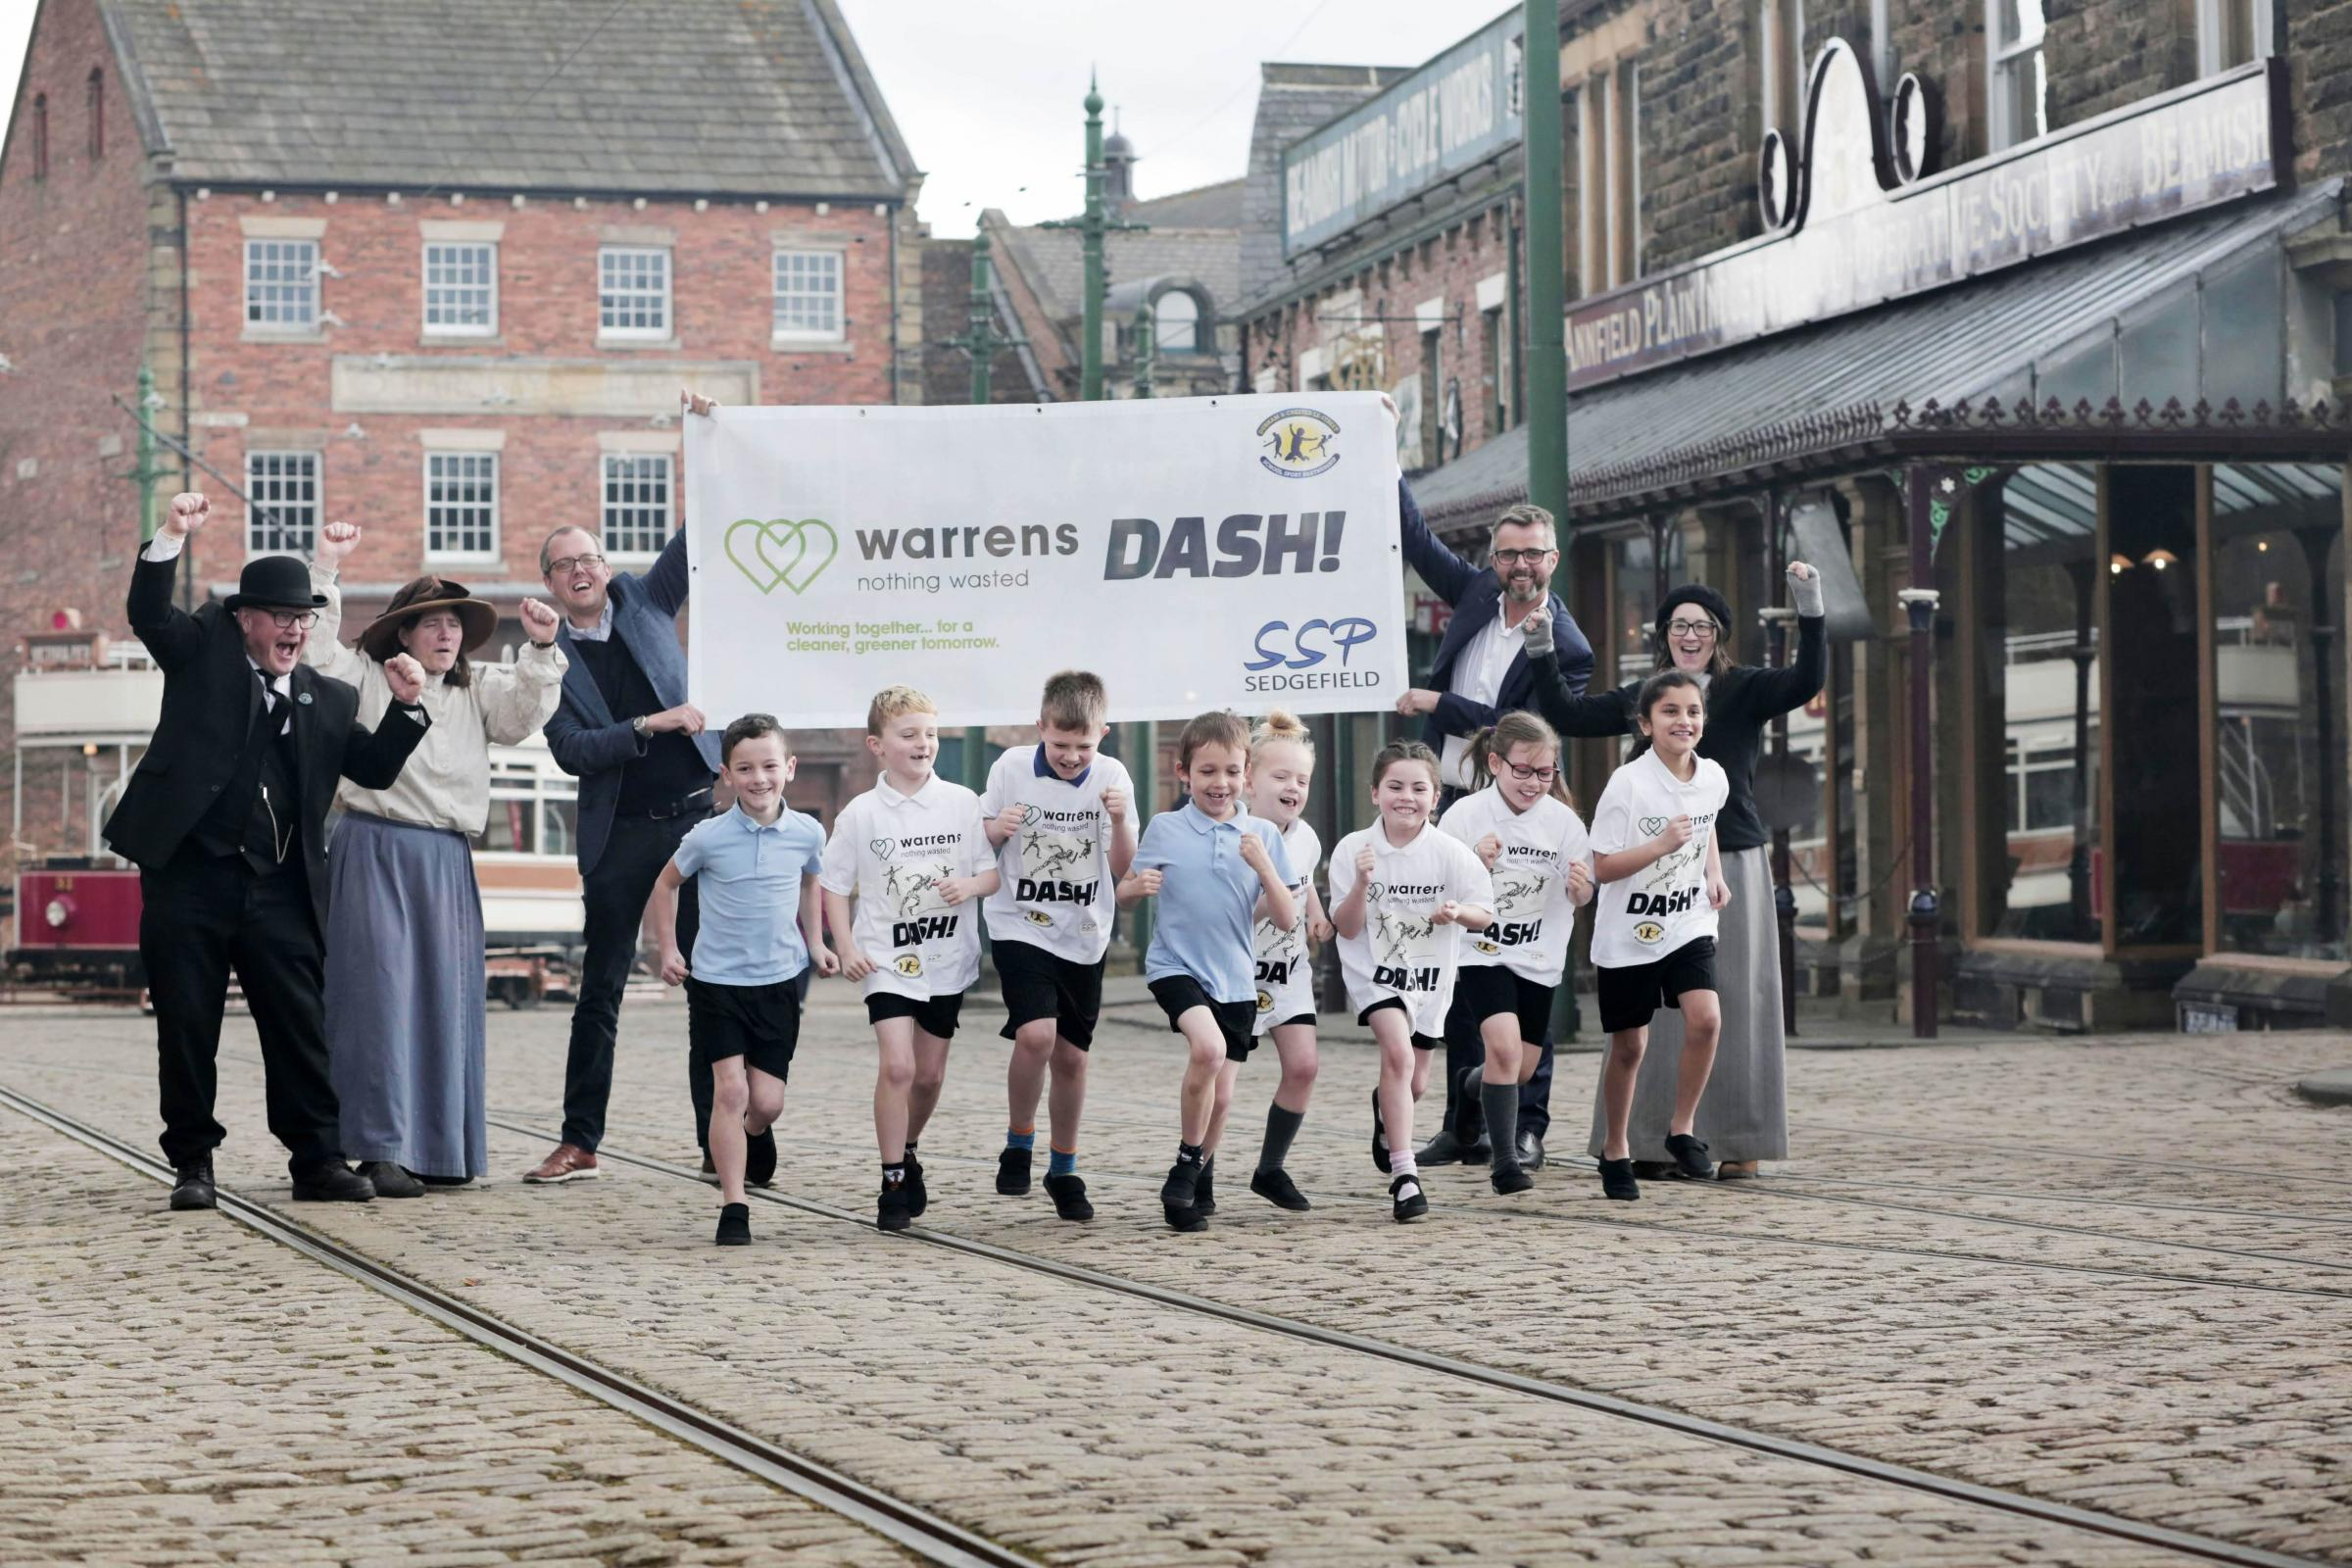 NEW VENUE: Children from Beamish School get ready for the 2019 Durham Dash at the Beamish Museum with sponsors Antony and Adam Warren of Warren's Grow and museum staff Colin Shipley, Catherine Rice and Hannah Cadwallader. Picture: STUART BOULTON